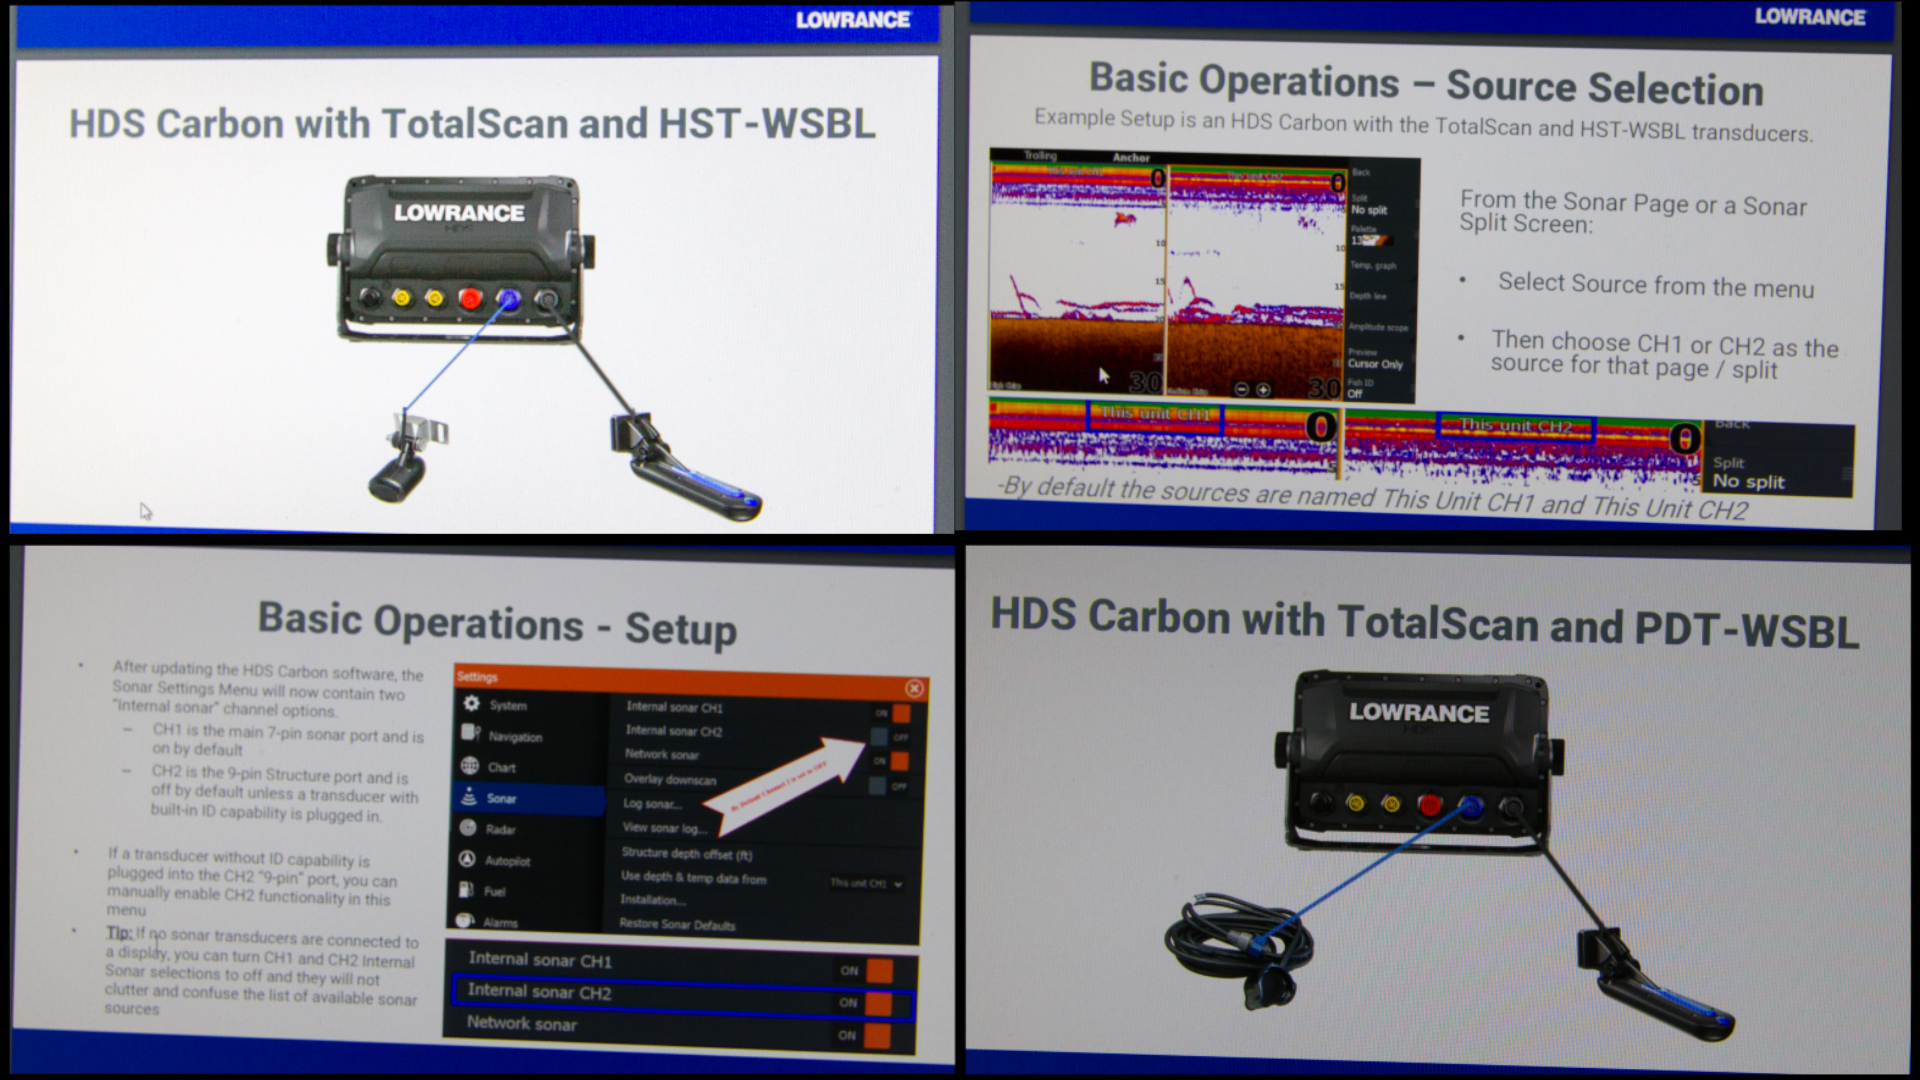 New Lowrance Carbon Dual channel CHIRP capabilities